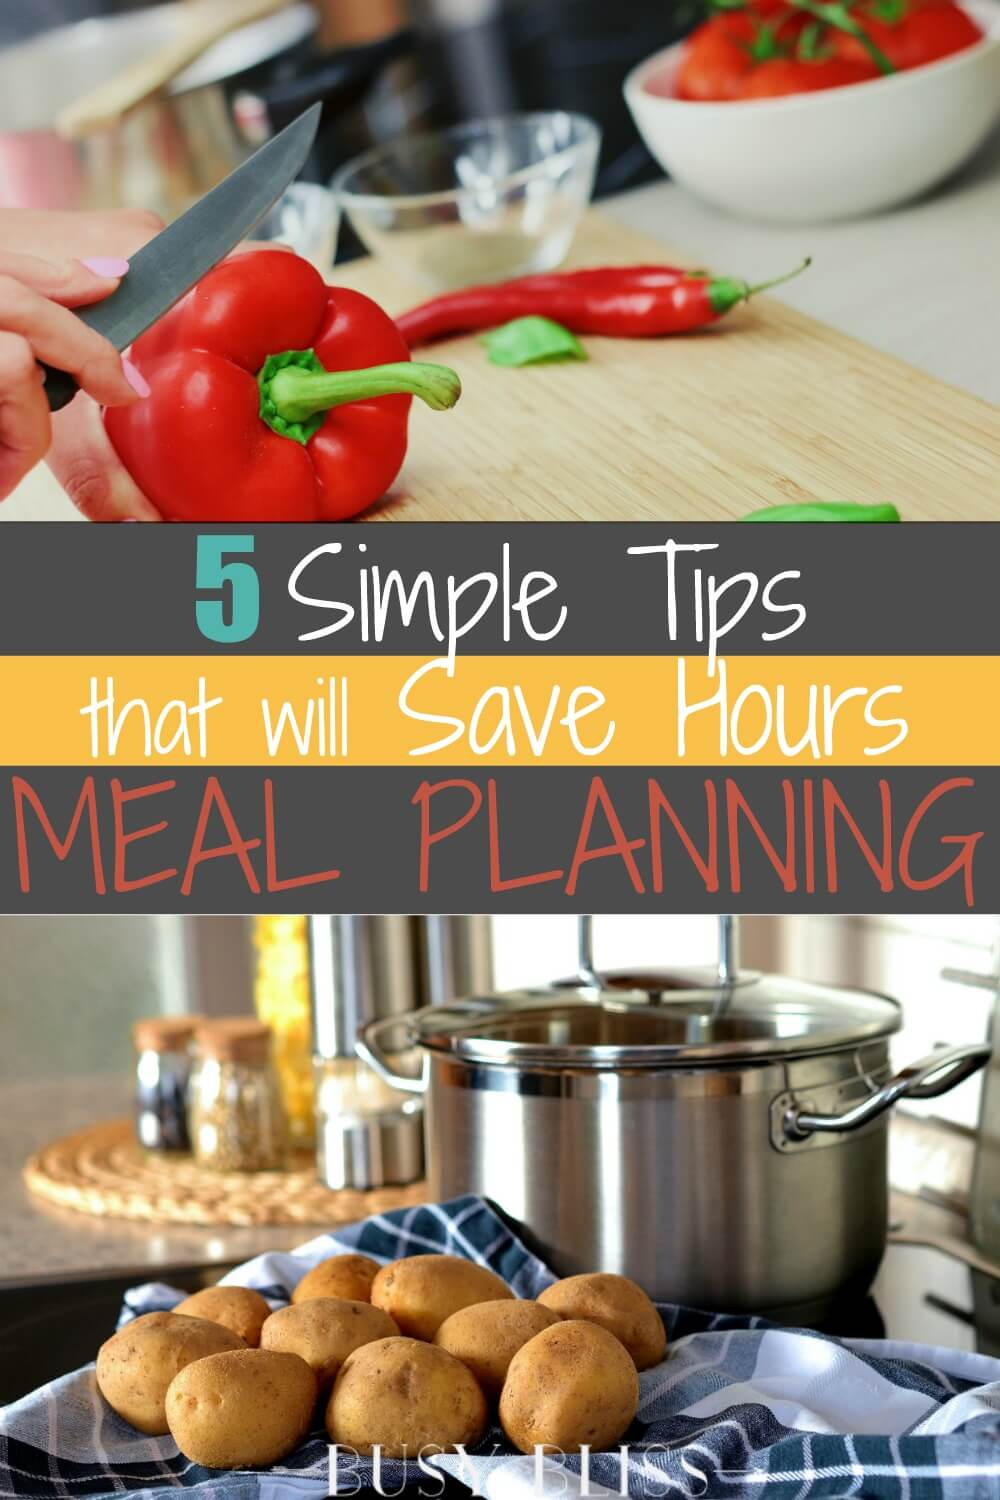 Save hours of time meal planning with these 5 easy tips. Use these tips each week to make meal planning simple and effective!